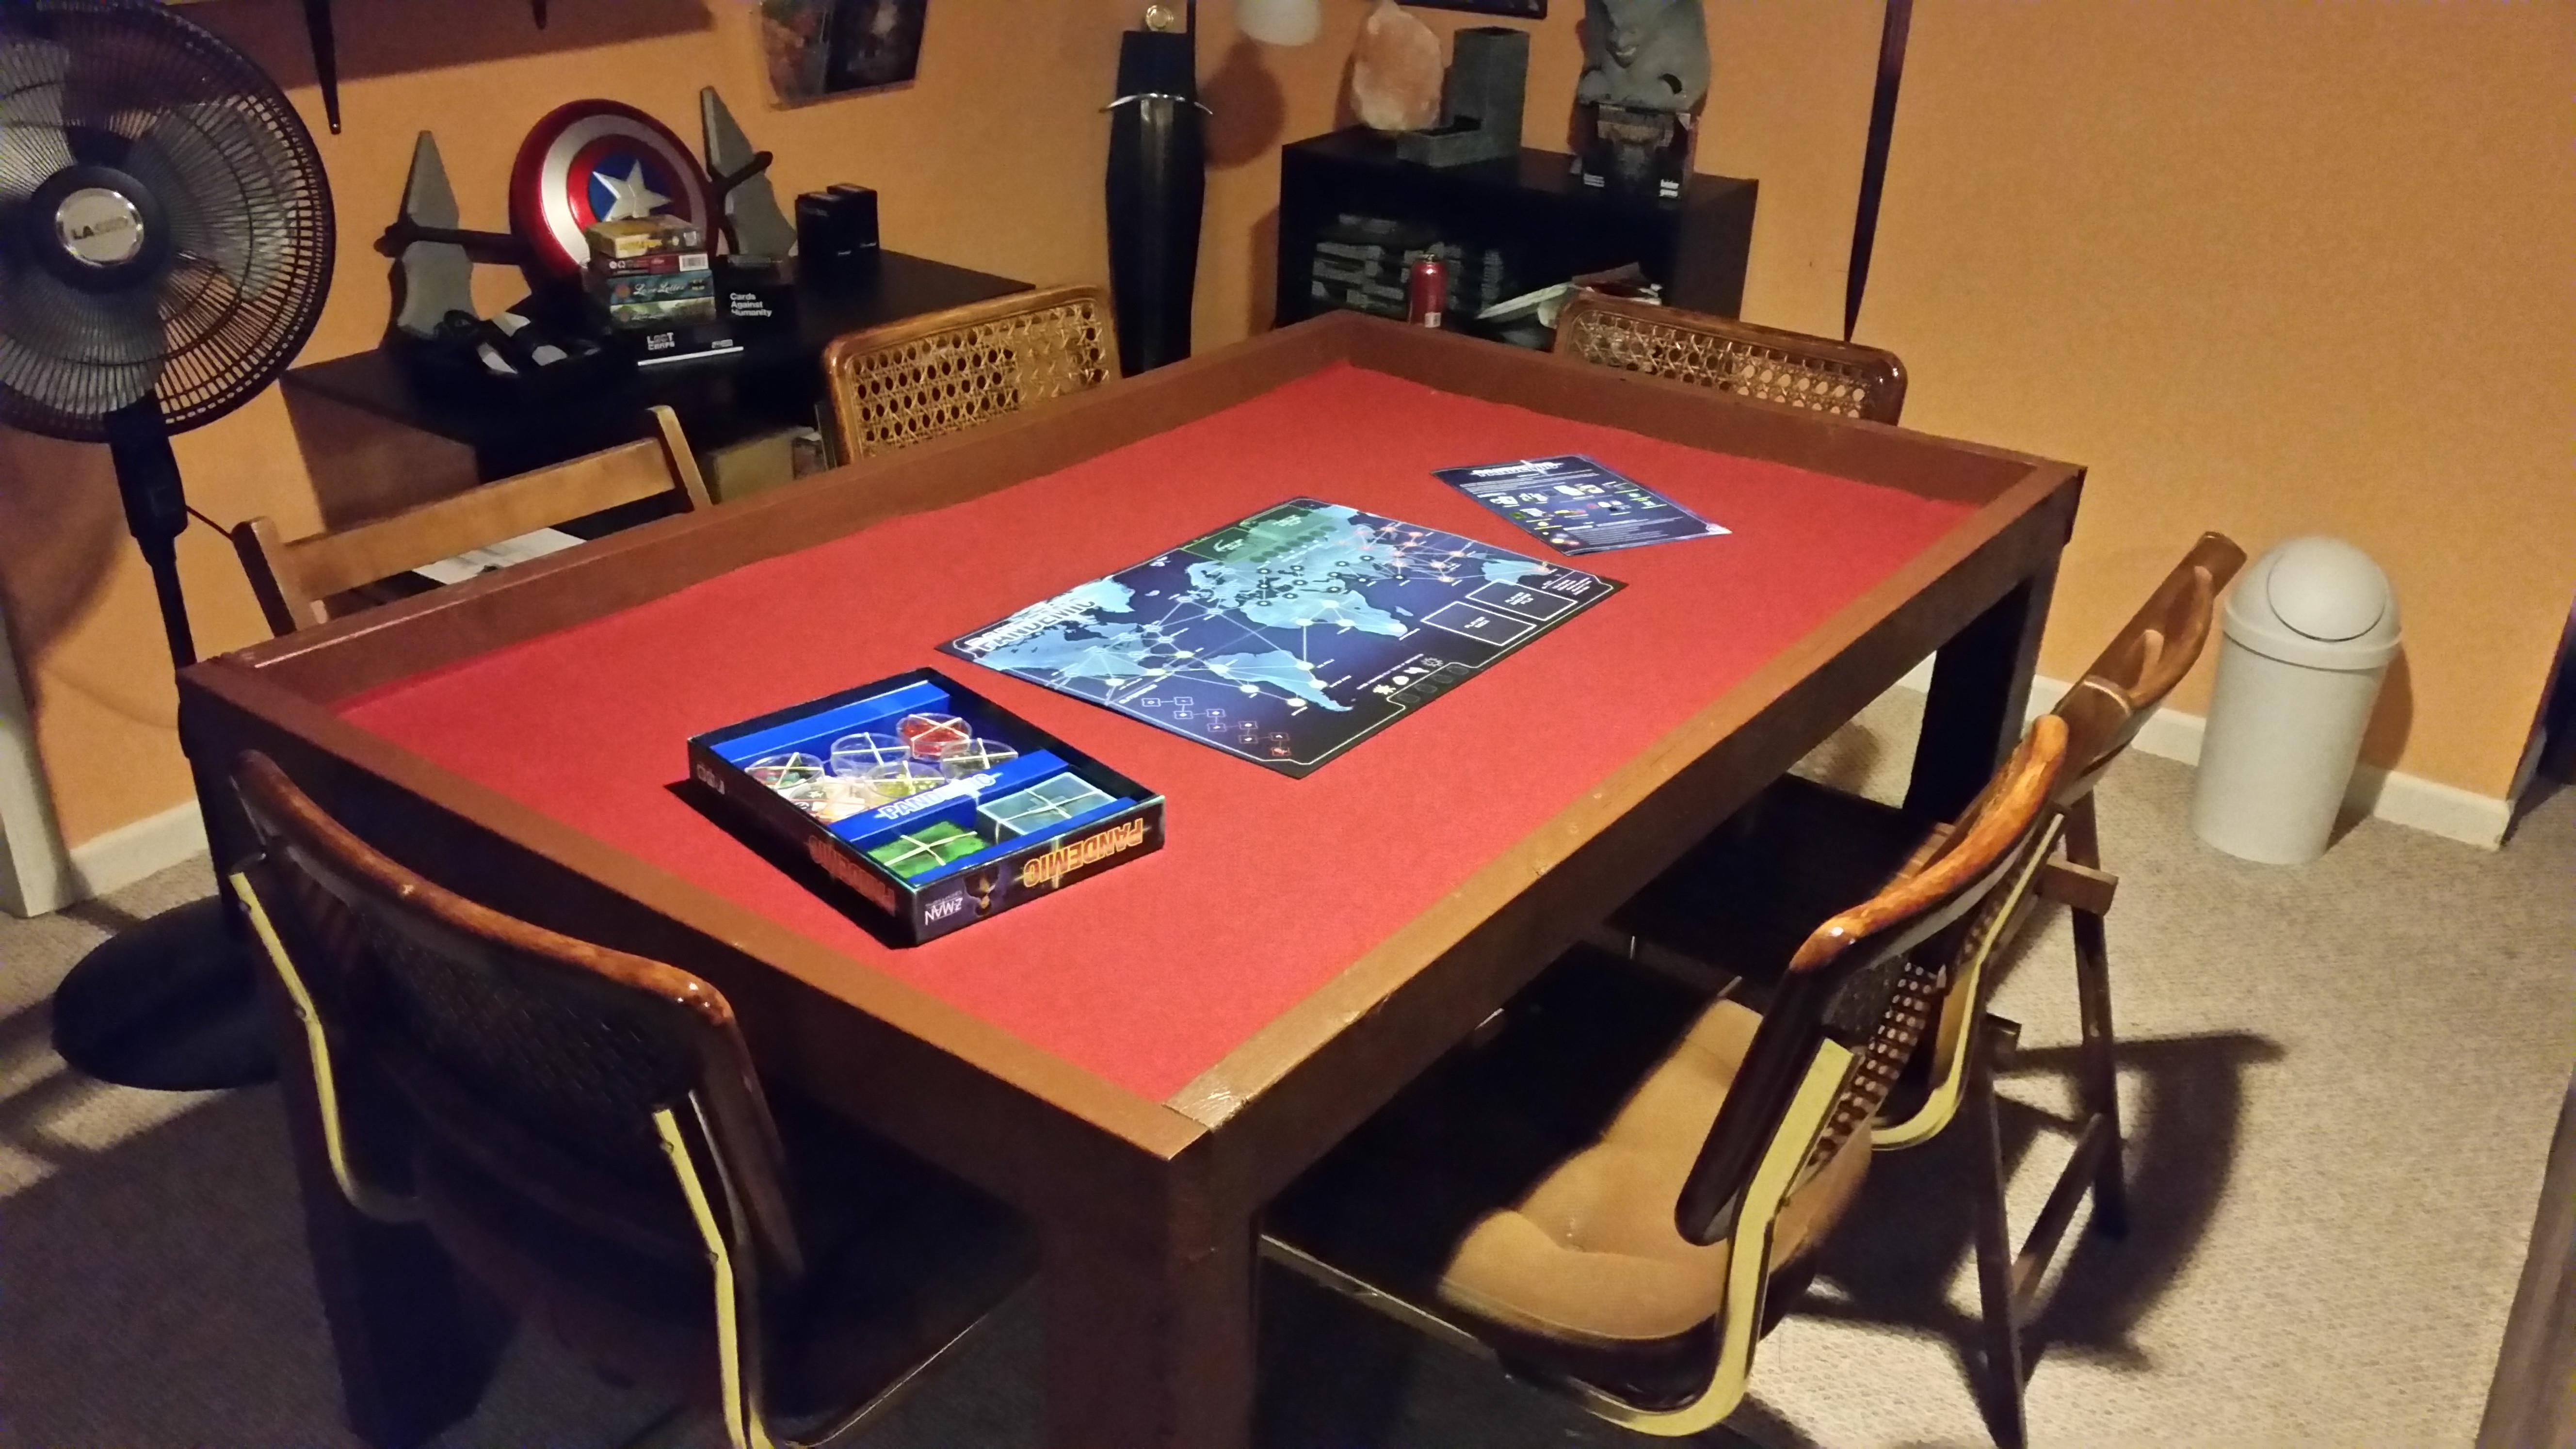 Best ideas about DIY Game Table . Save or Pin DIY Board Game Table for under $500 boardgames Now.